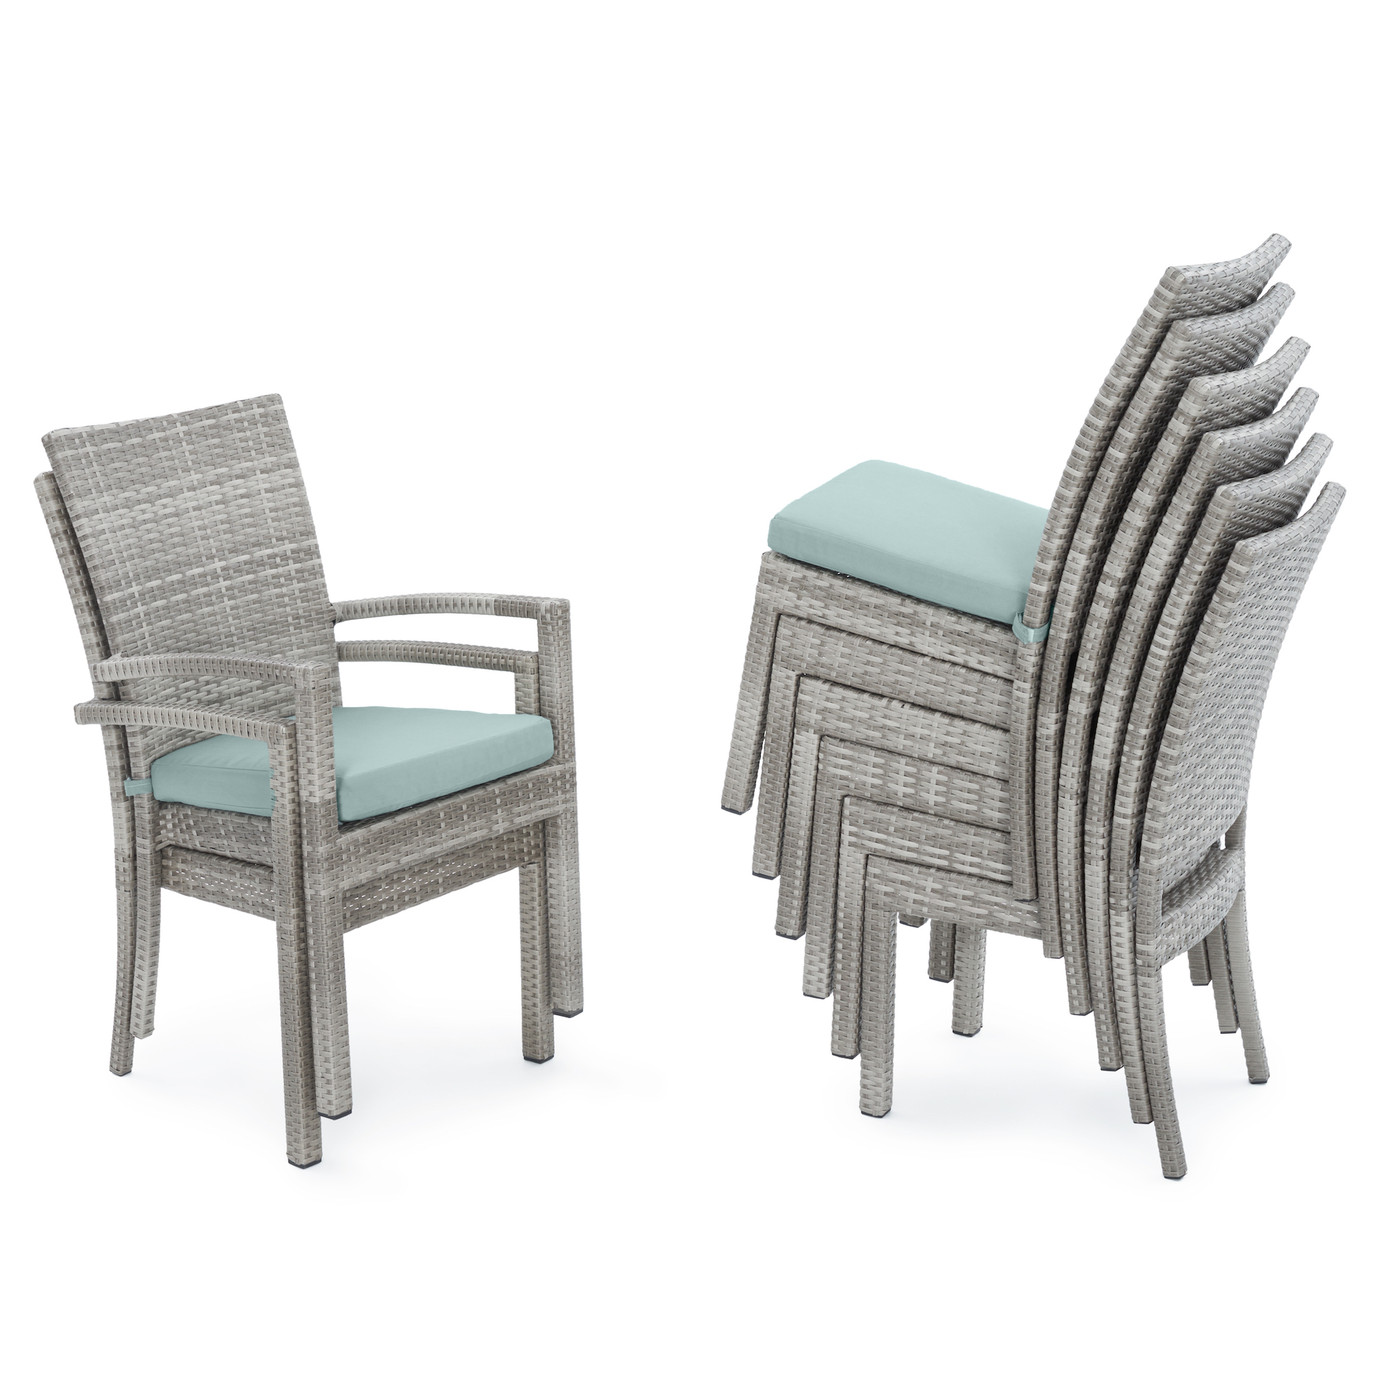 Cannes™ Woven Dining Set - Bliss Blue